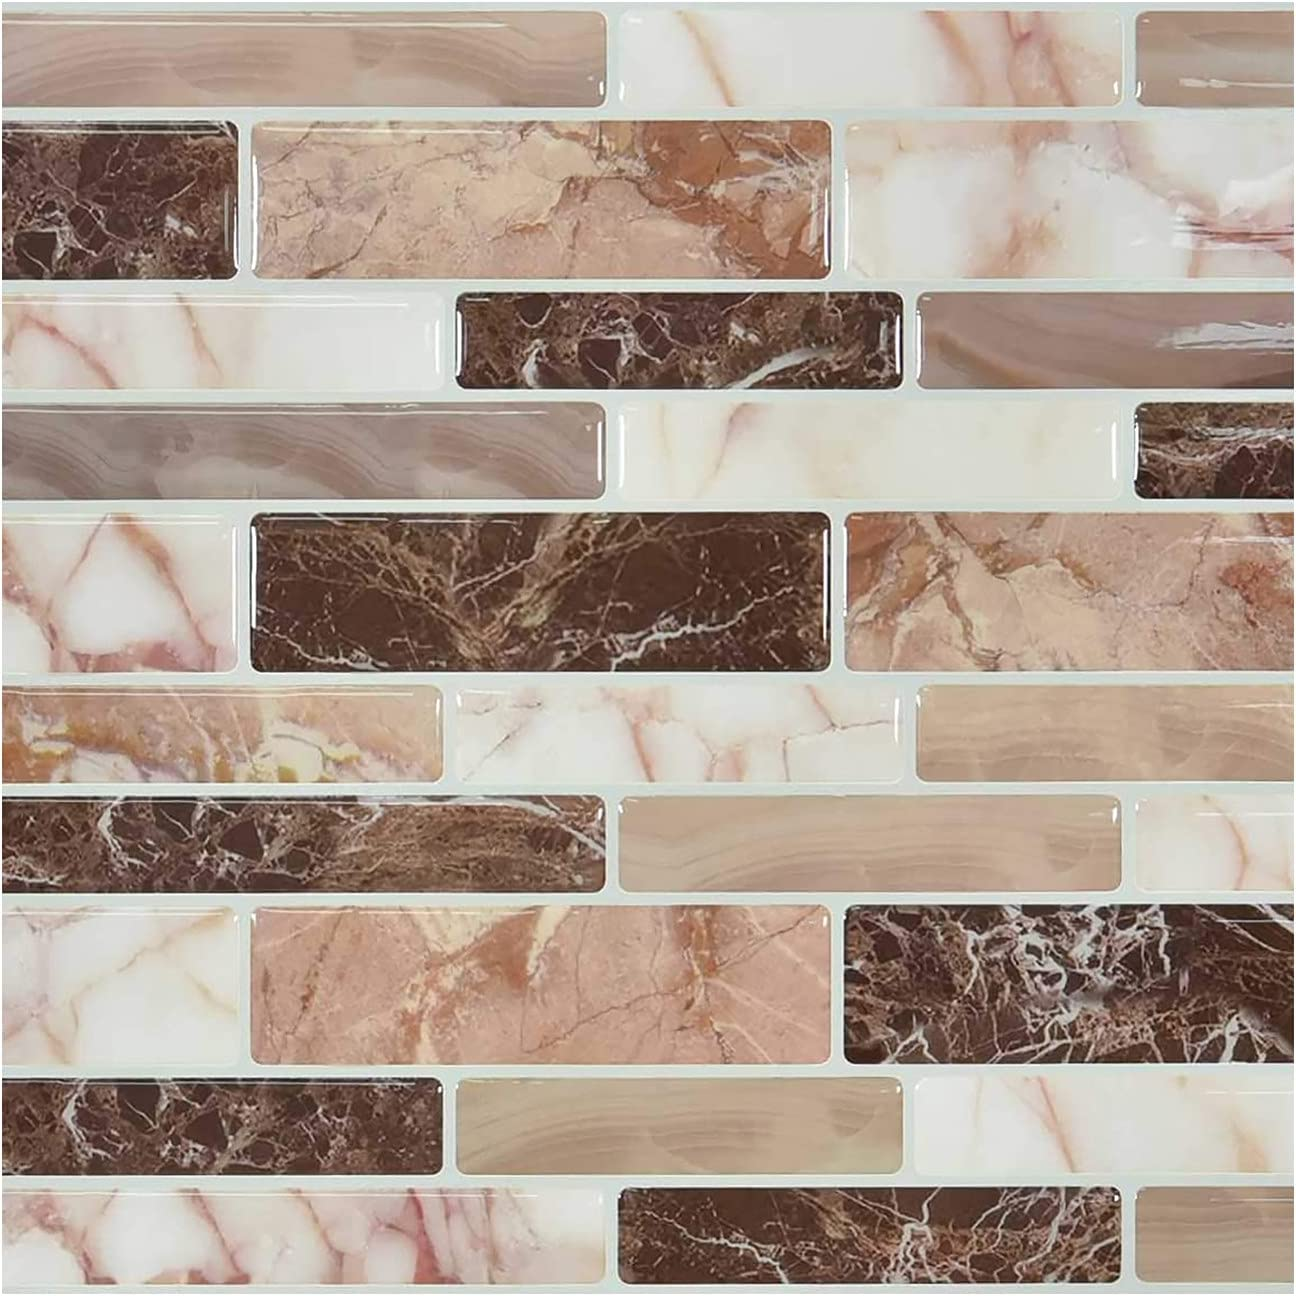 10-Sheet 3D Mosaic Peel and Stick Tile Backsplash, 3.94 X 3.94 inches ( 10 X 10 cm) Tile Stickers, Self Adhesive Decorative Sticker Wall Home Decor, Removable Wallpaper for Kitchen Bathroom (22)